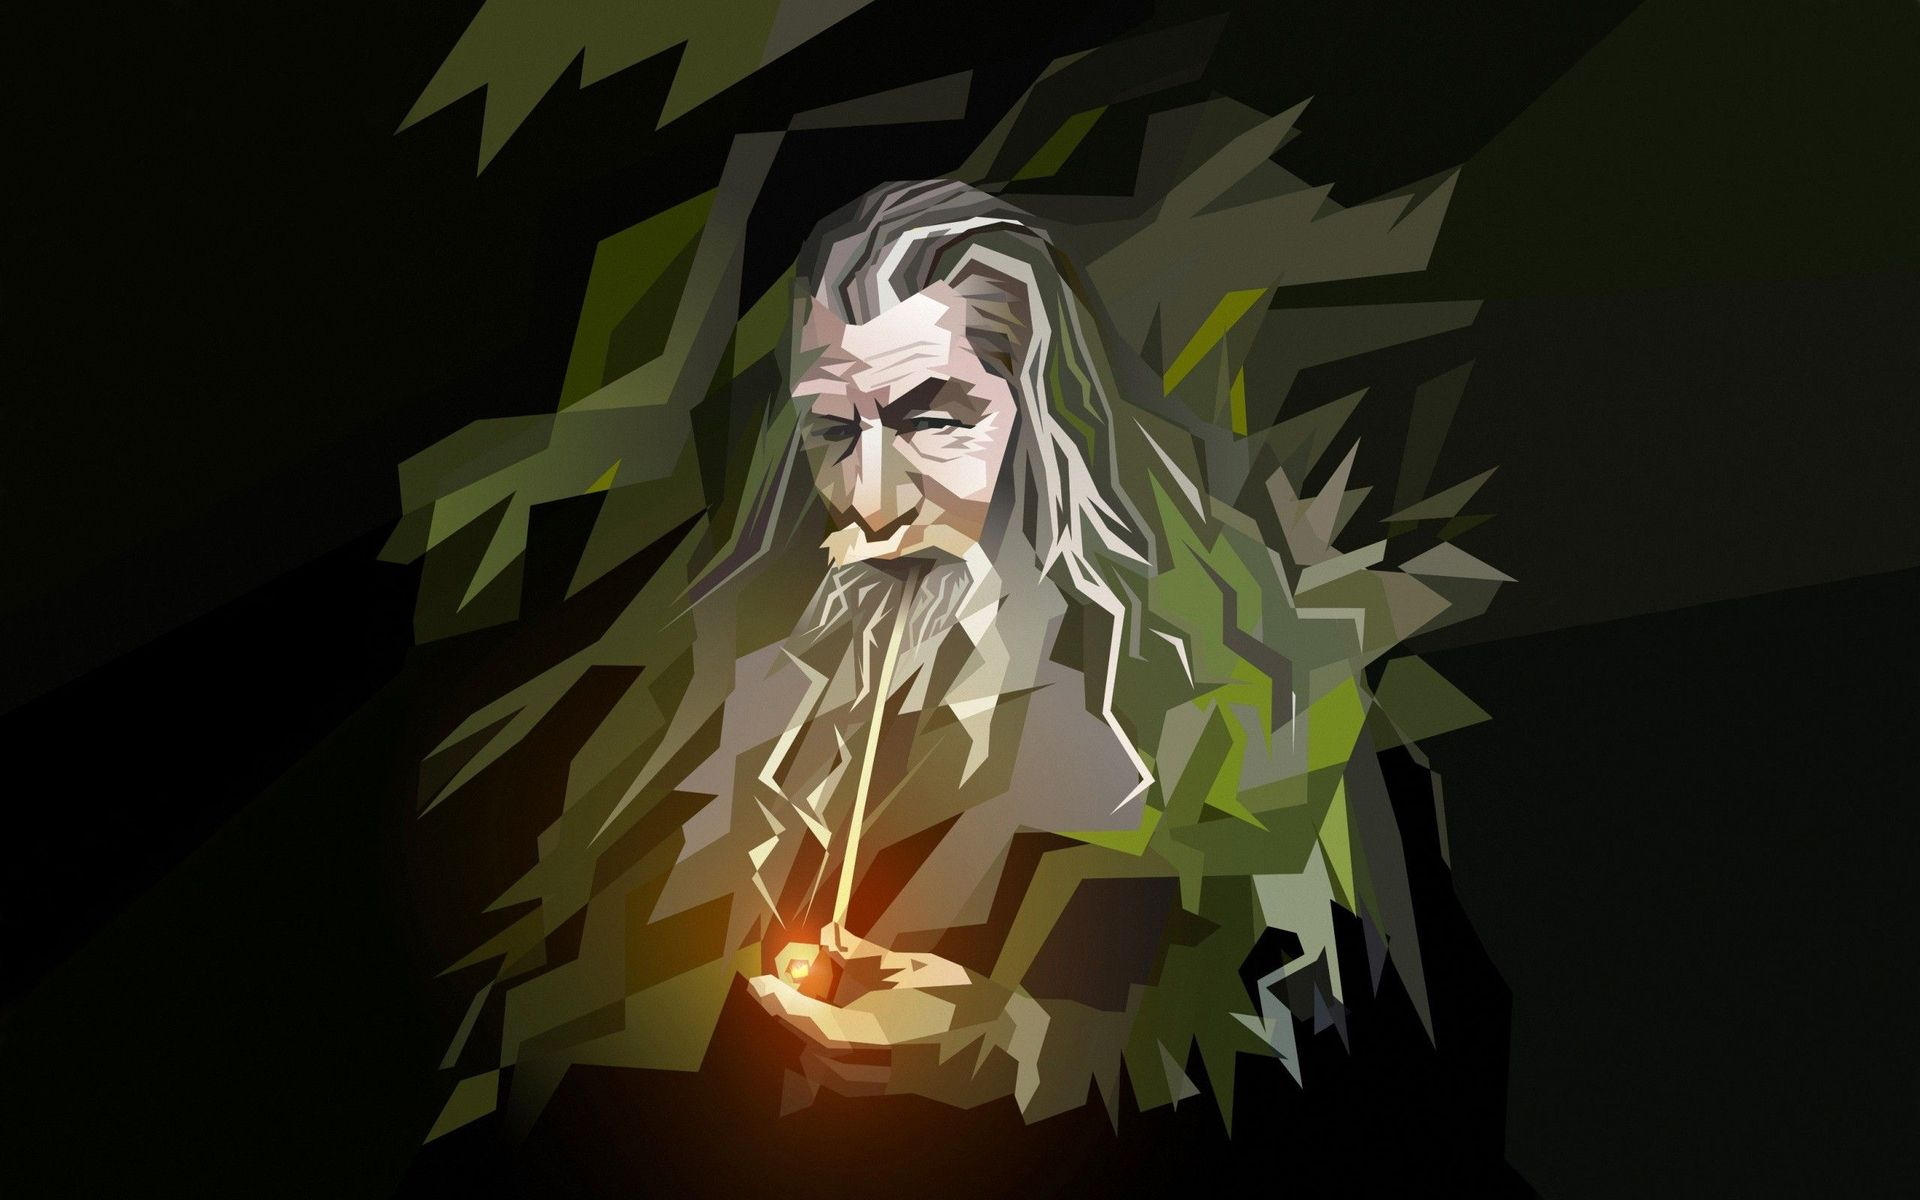 Download Gandalf   The Lord of the Rings wallpaper 1920x1200